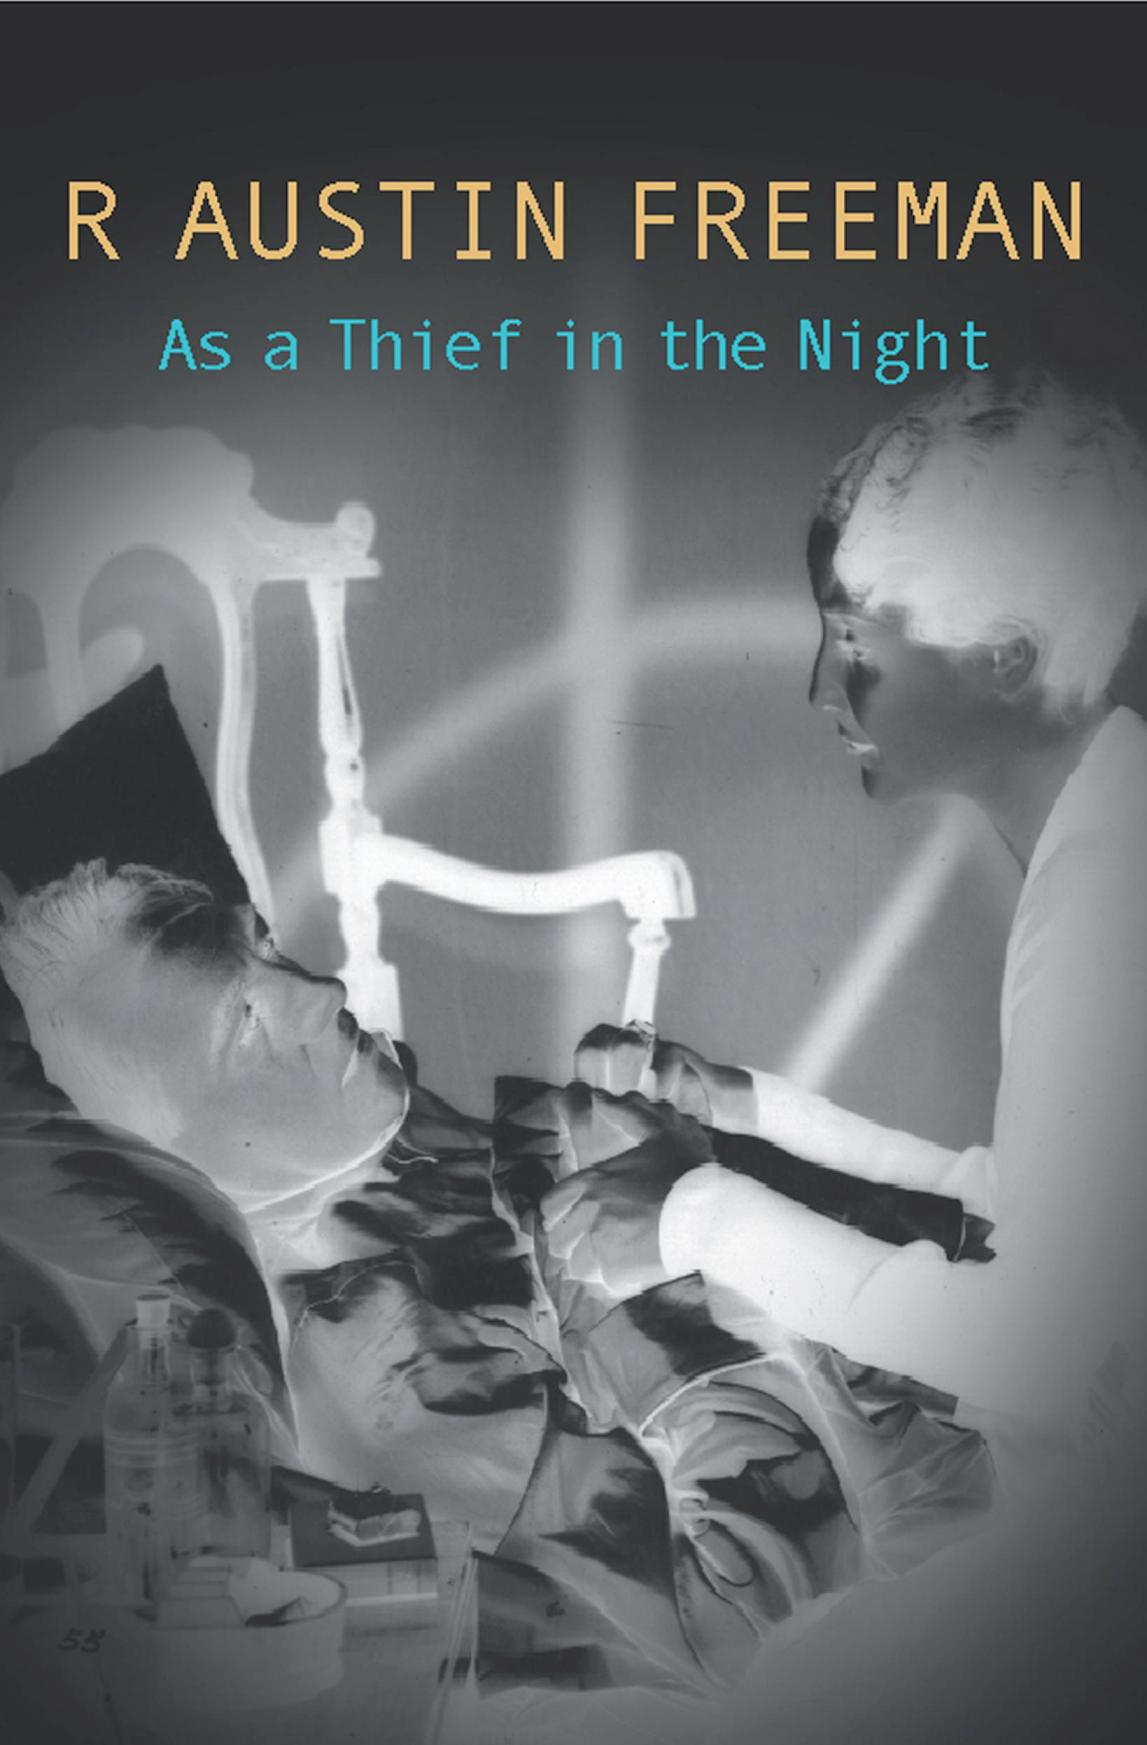 As a Thief in the Night